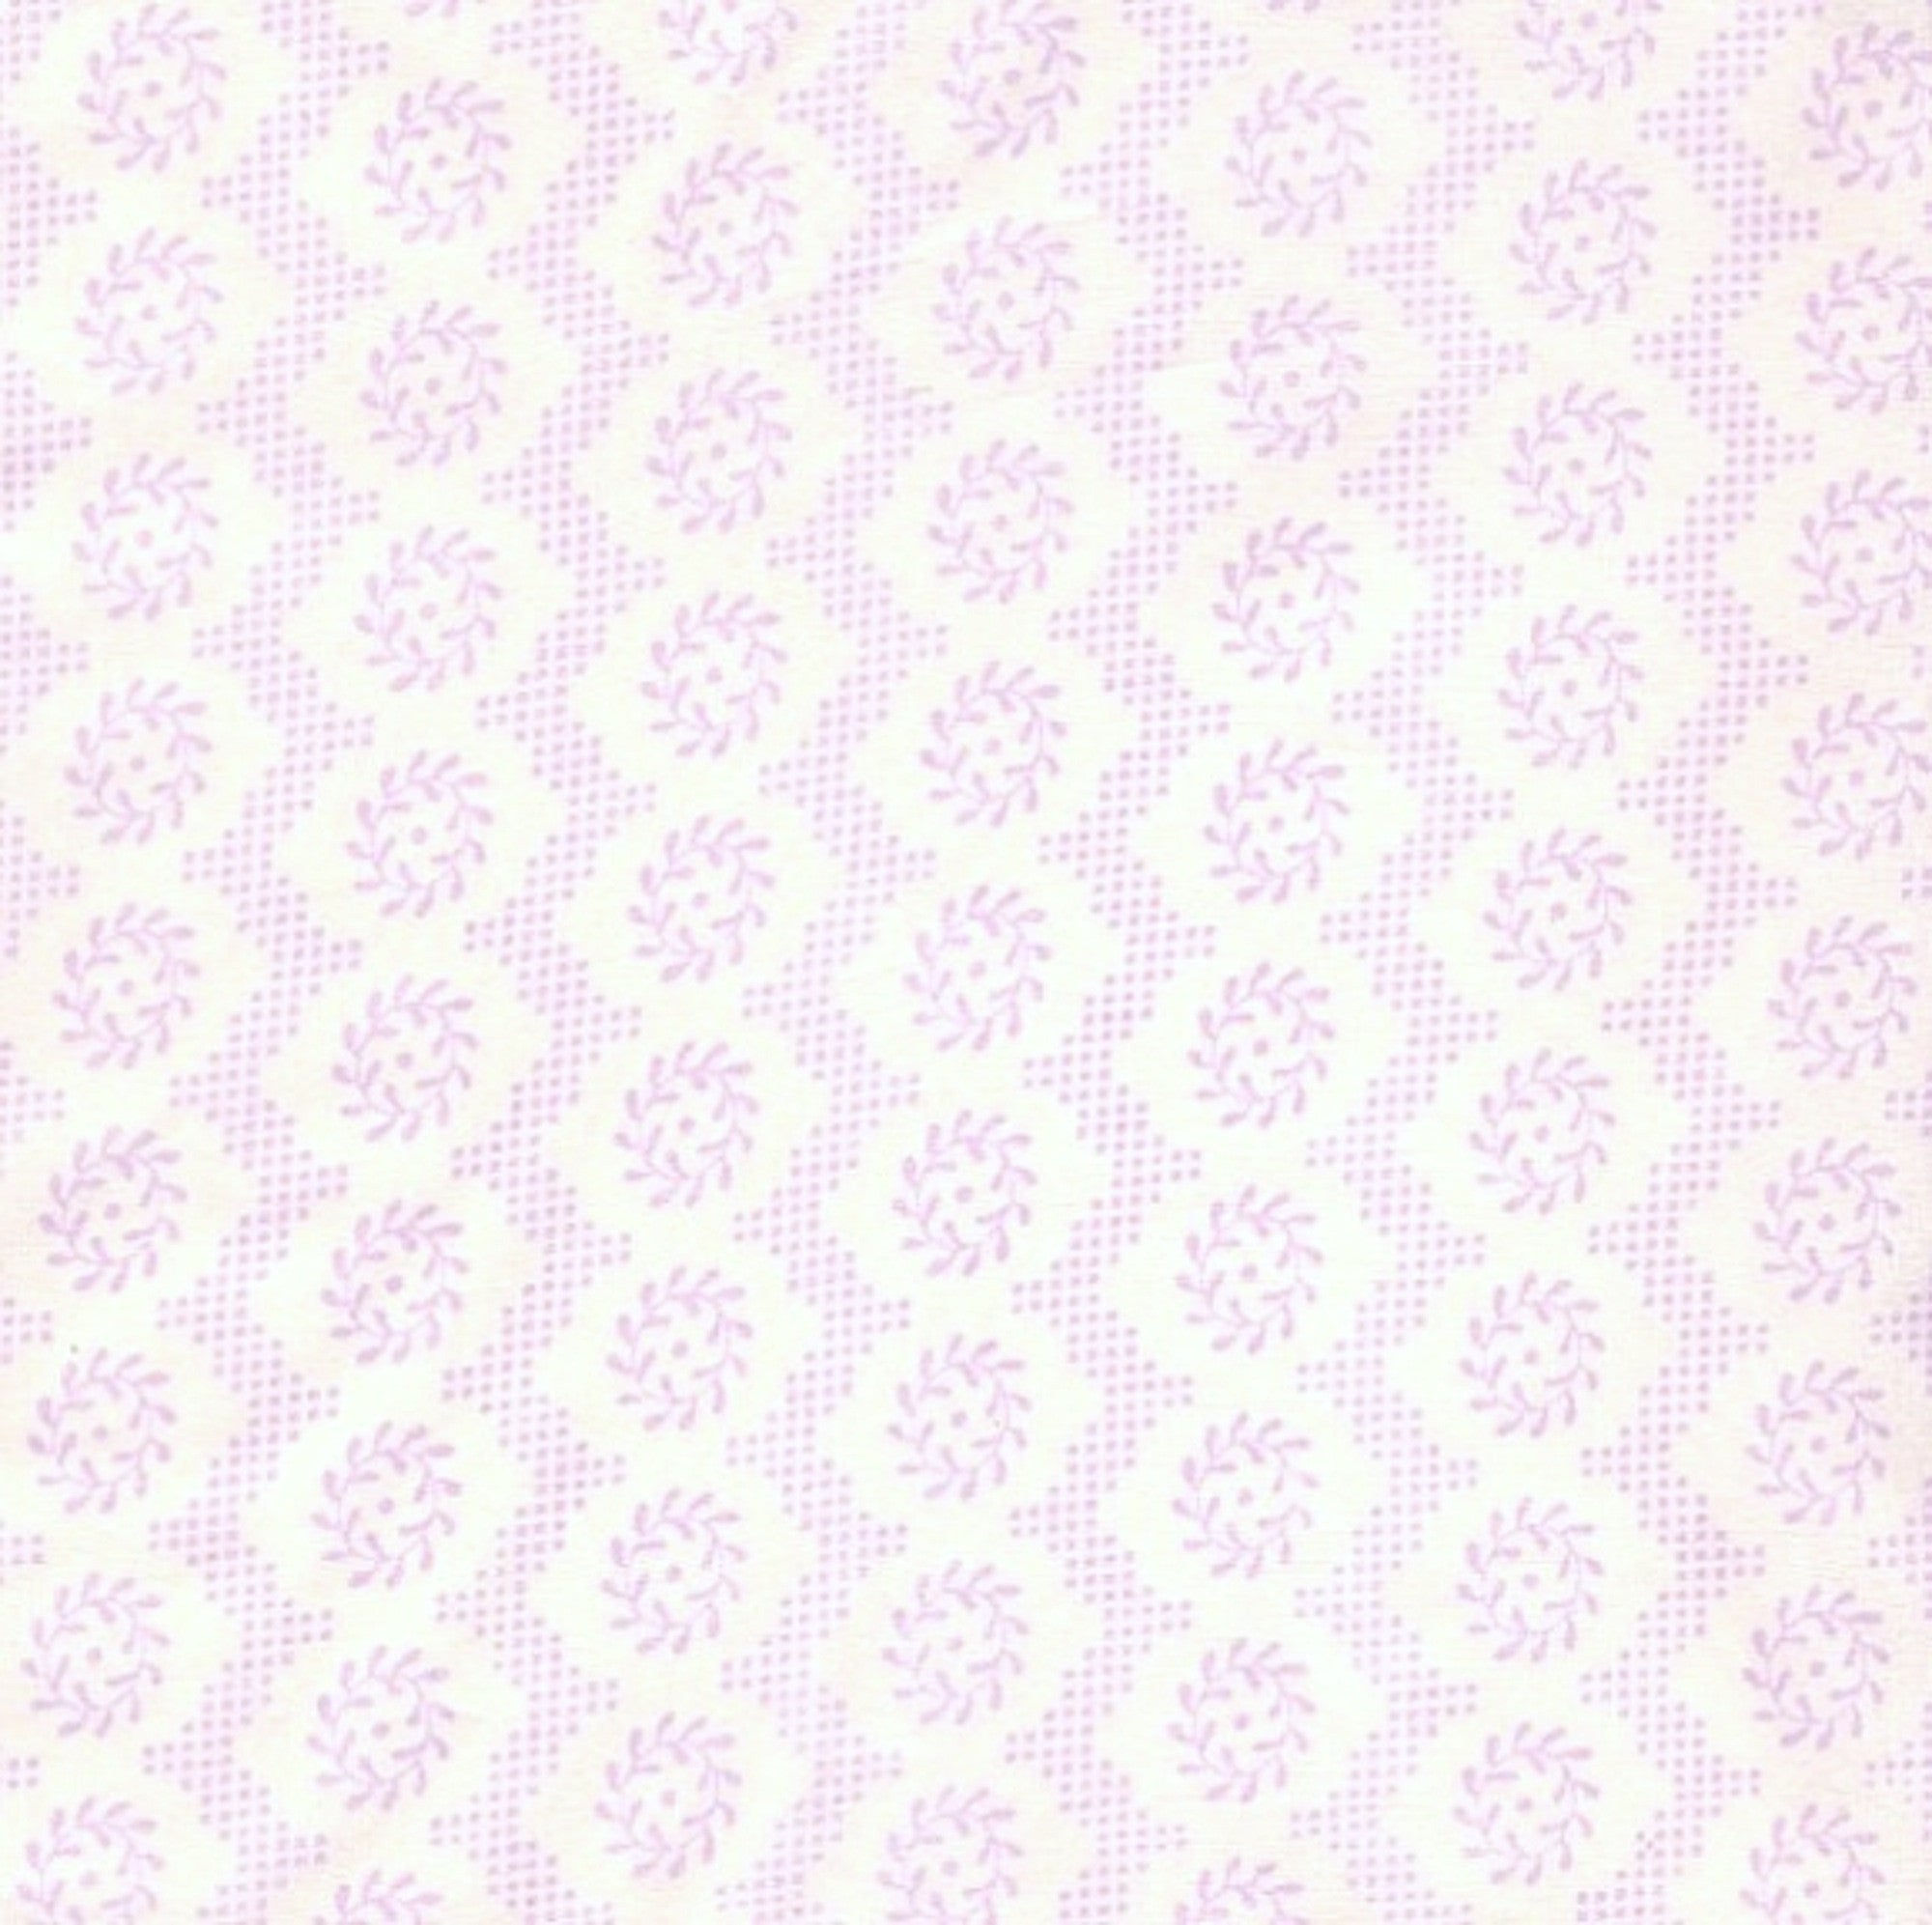 Cotton Percale - Lilac Violine Fabric